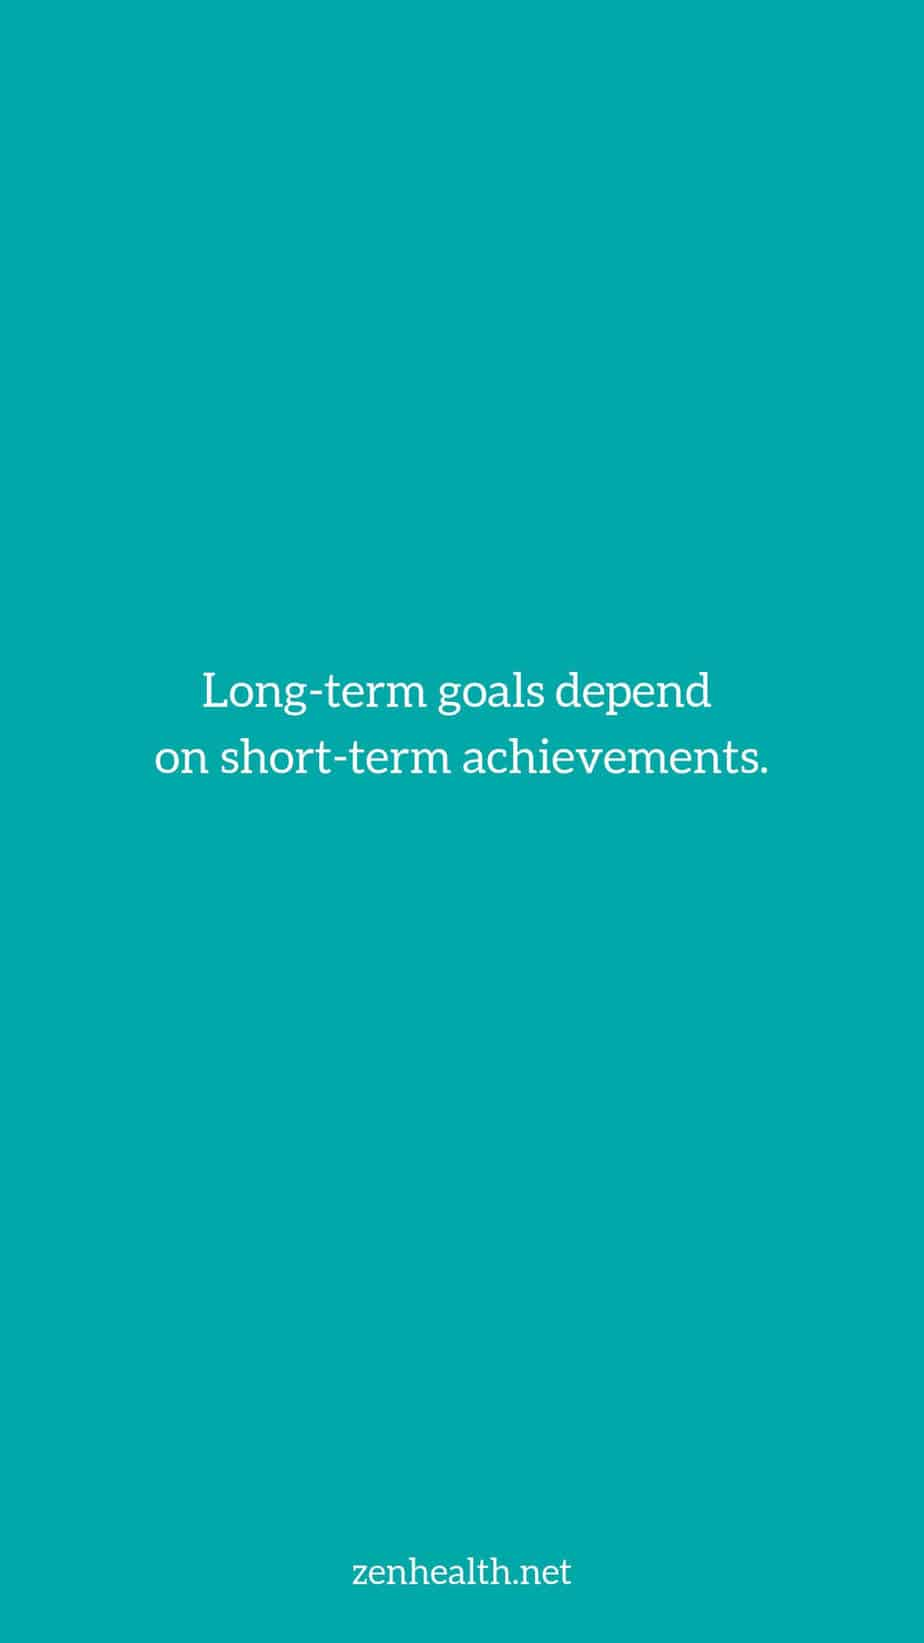 Long-term goals depend on short-term achievements.